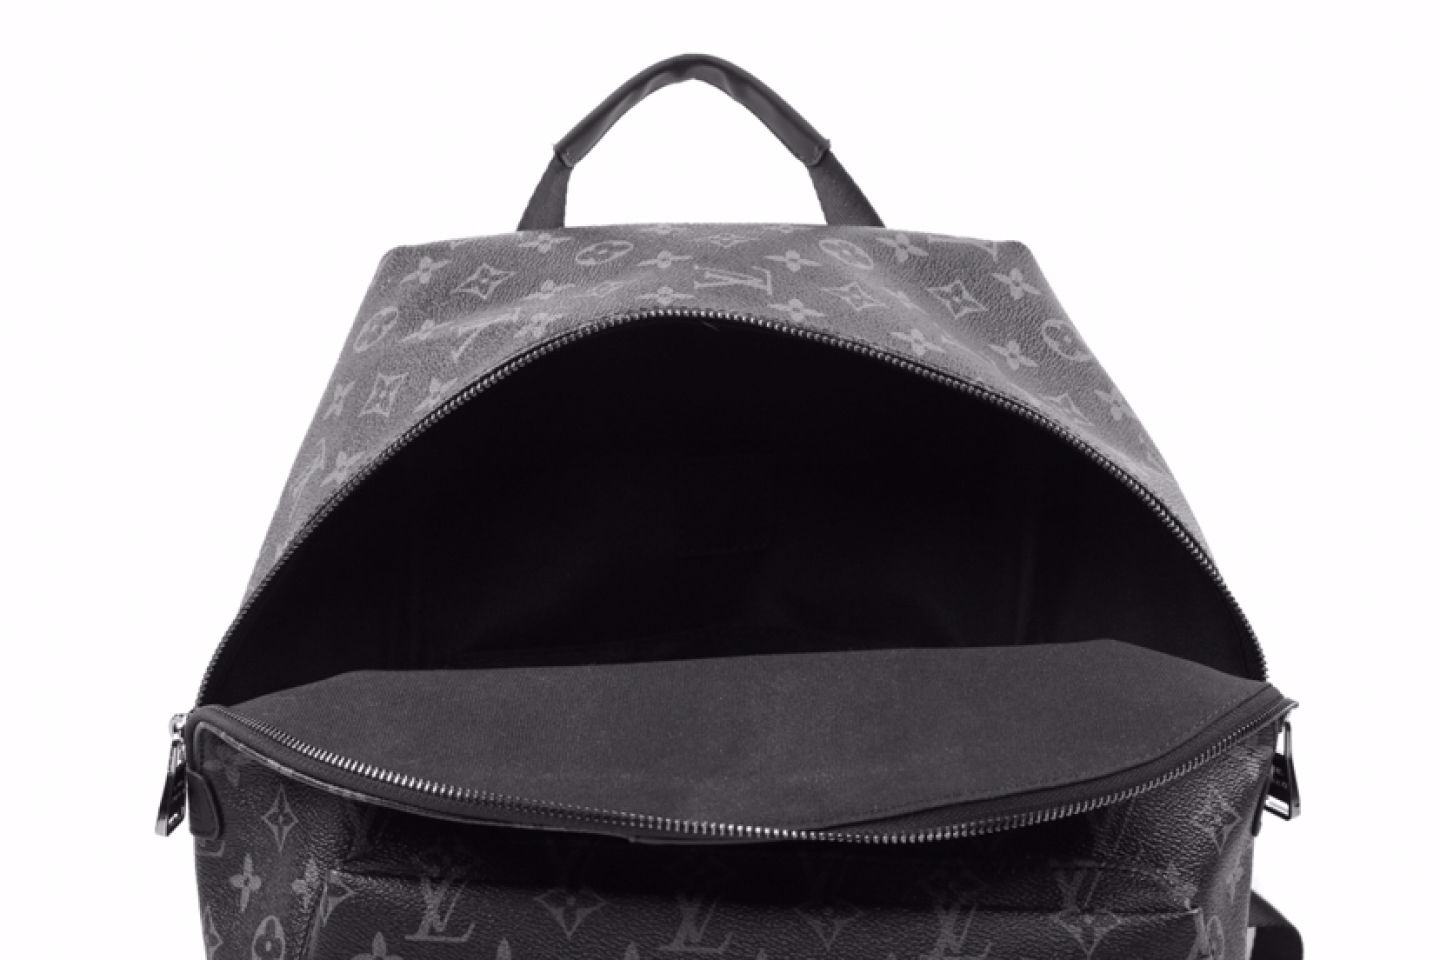 Goods Louis Vuitton x fragment Apollo Backpack Monogram Eclipse Black 4 louis_vuitton_x_fragment_apollo_backpack_monogram_eclipse_black__4